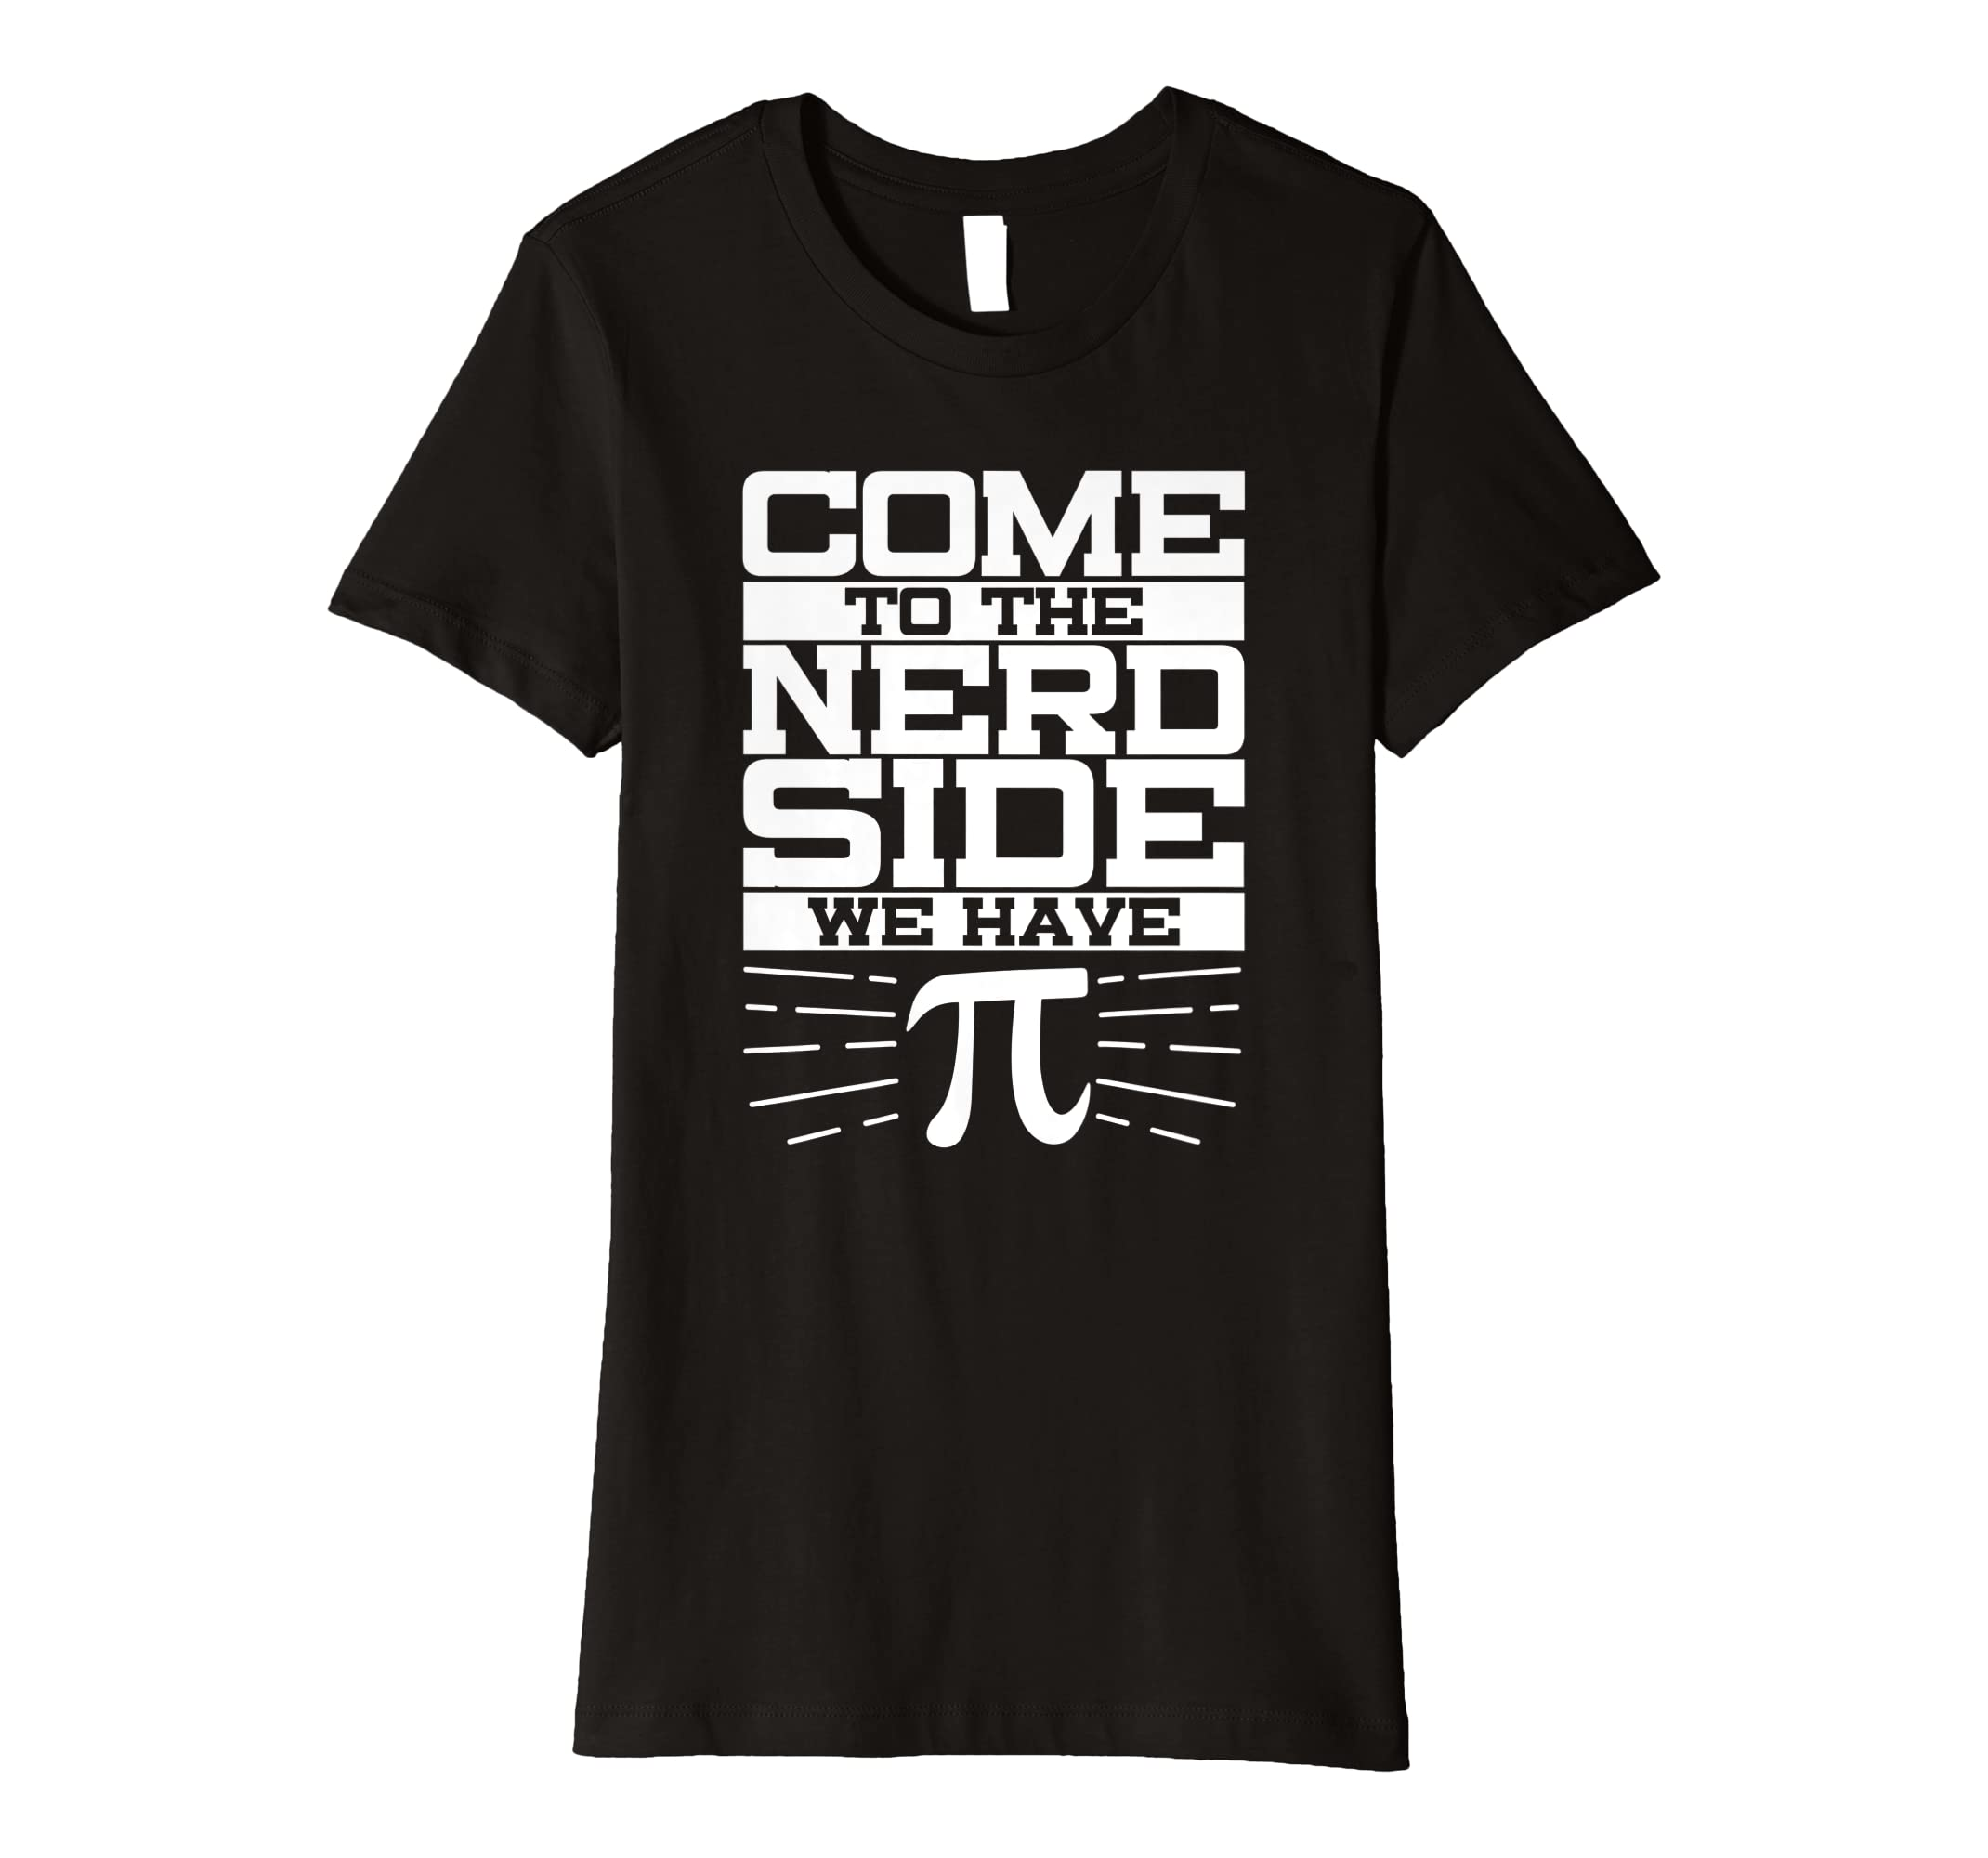 7017112e Amazon.com: Come To The Nerd Side We Have Pi 3.14 Funny Math Geek Shirt:  Clothing